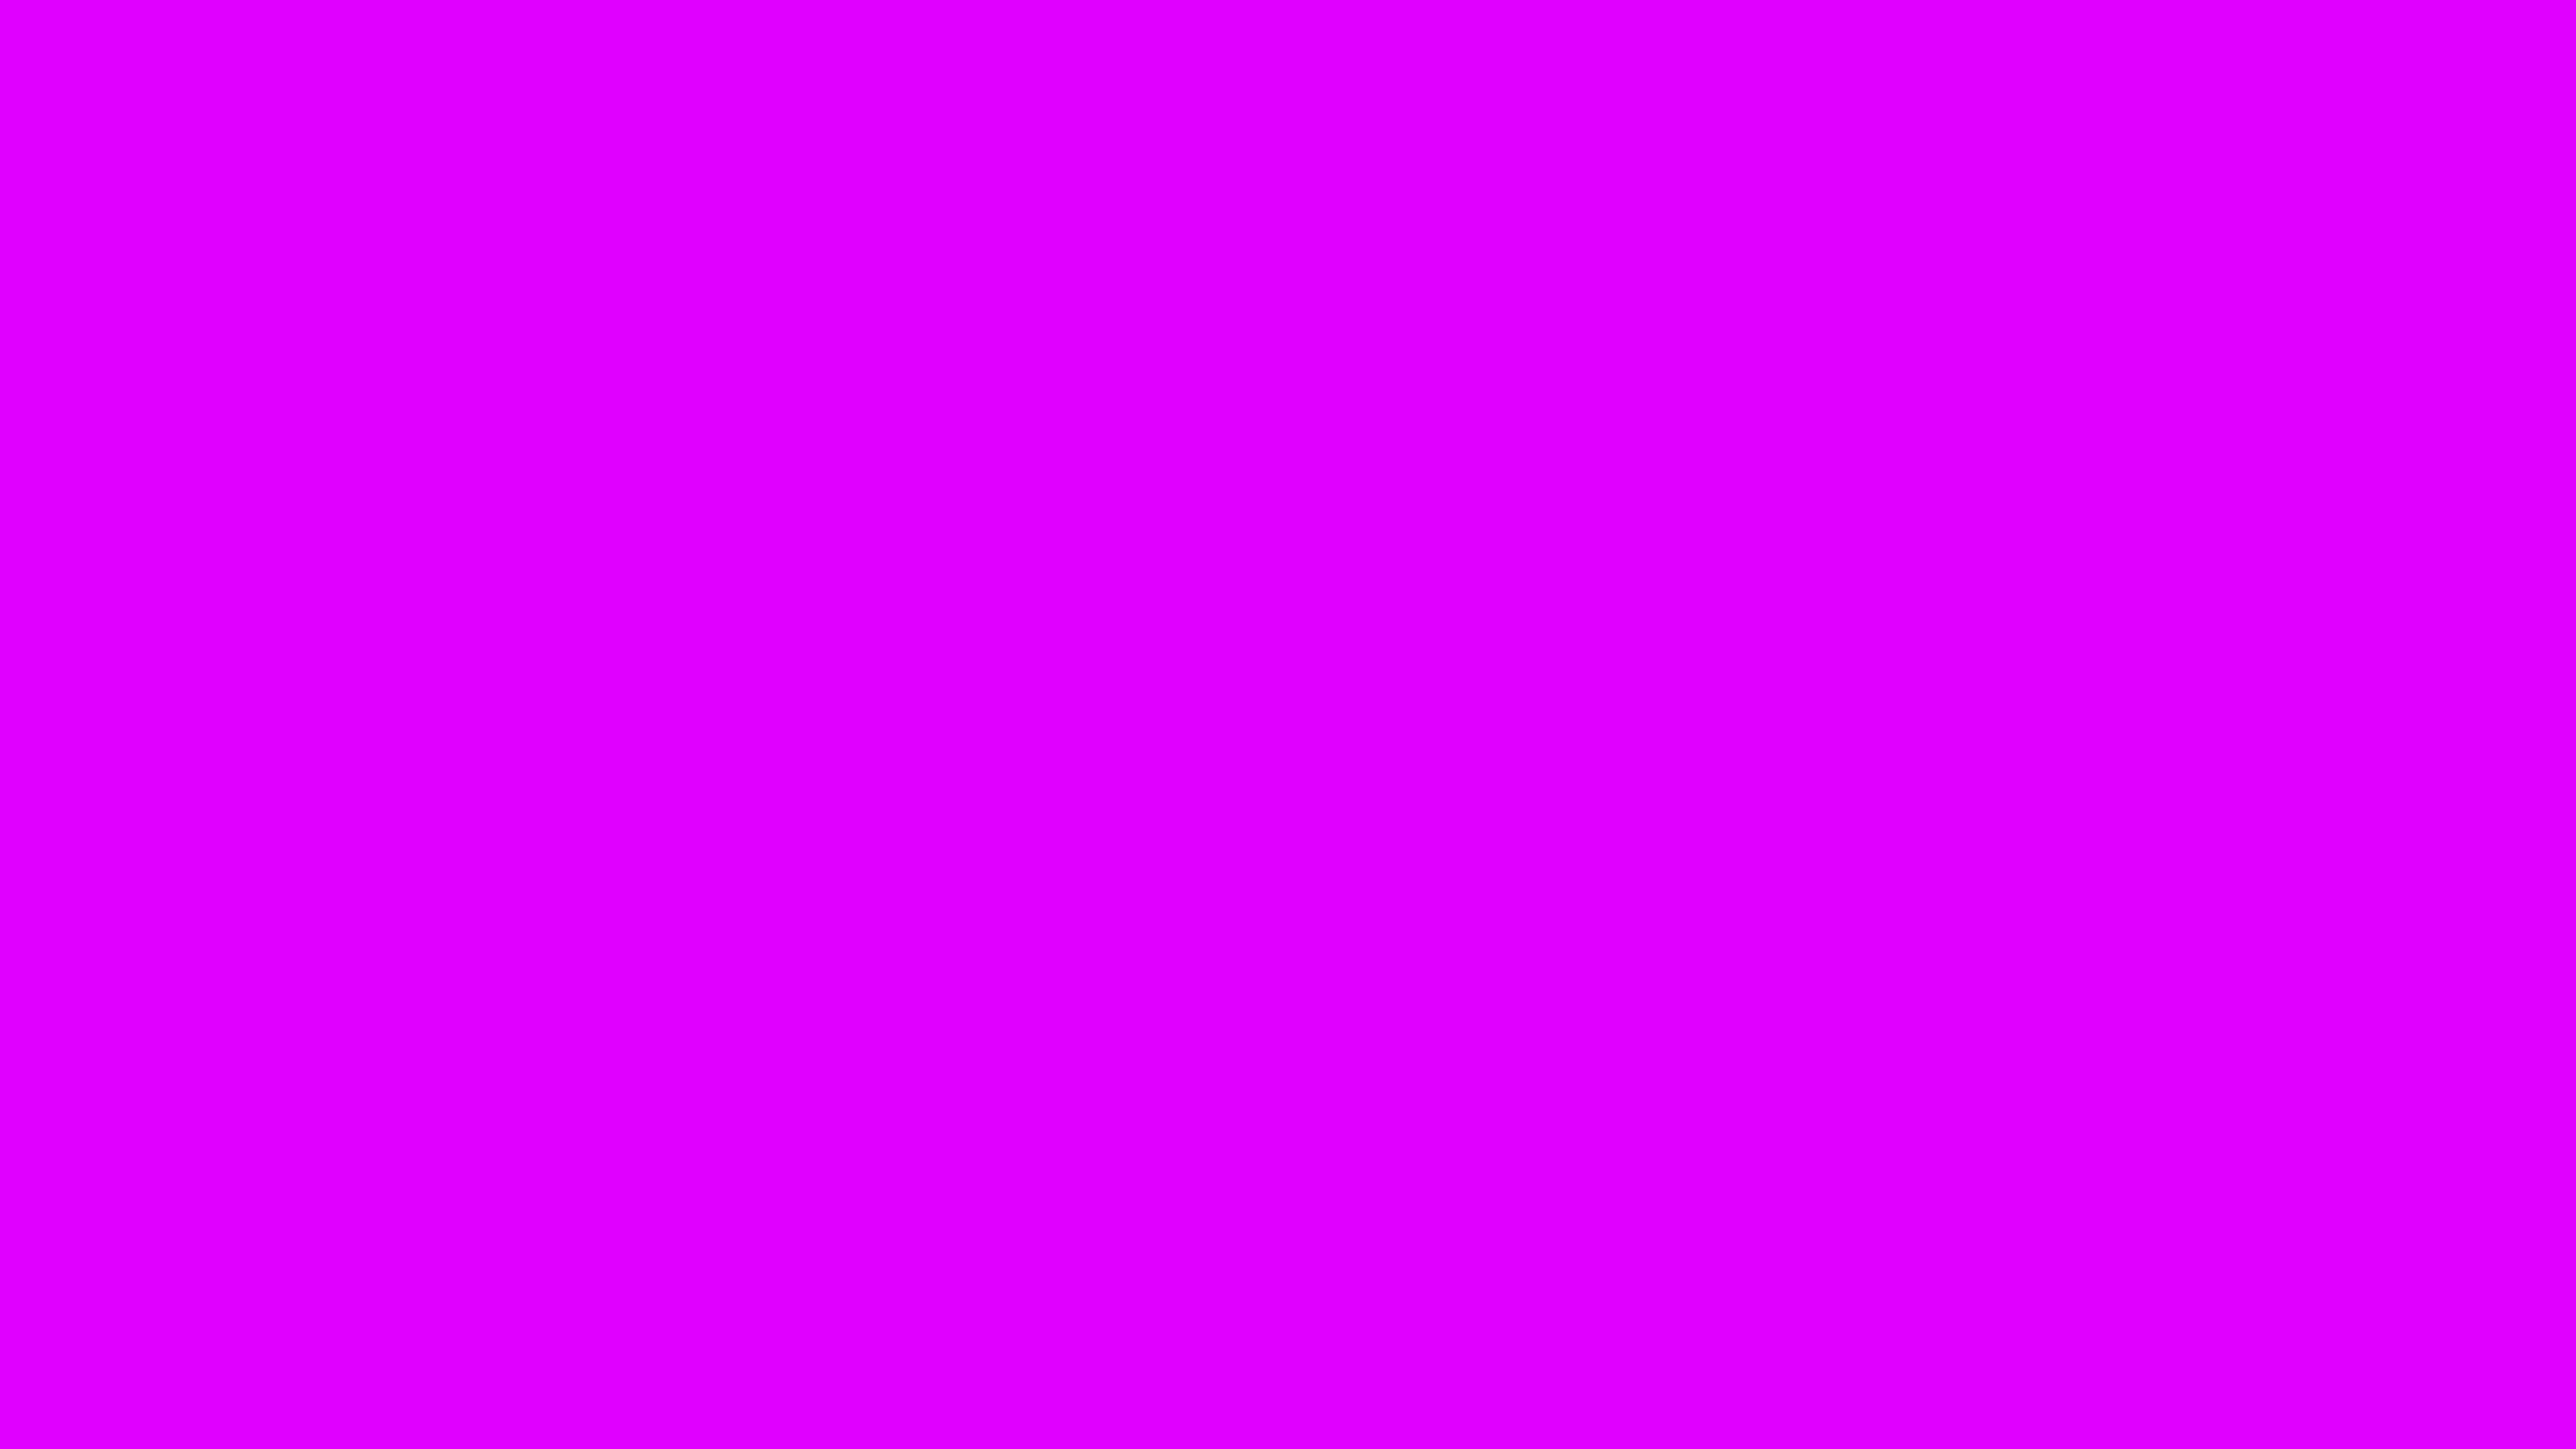 4096x2304 Psychedelic Purple Solid Color Background